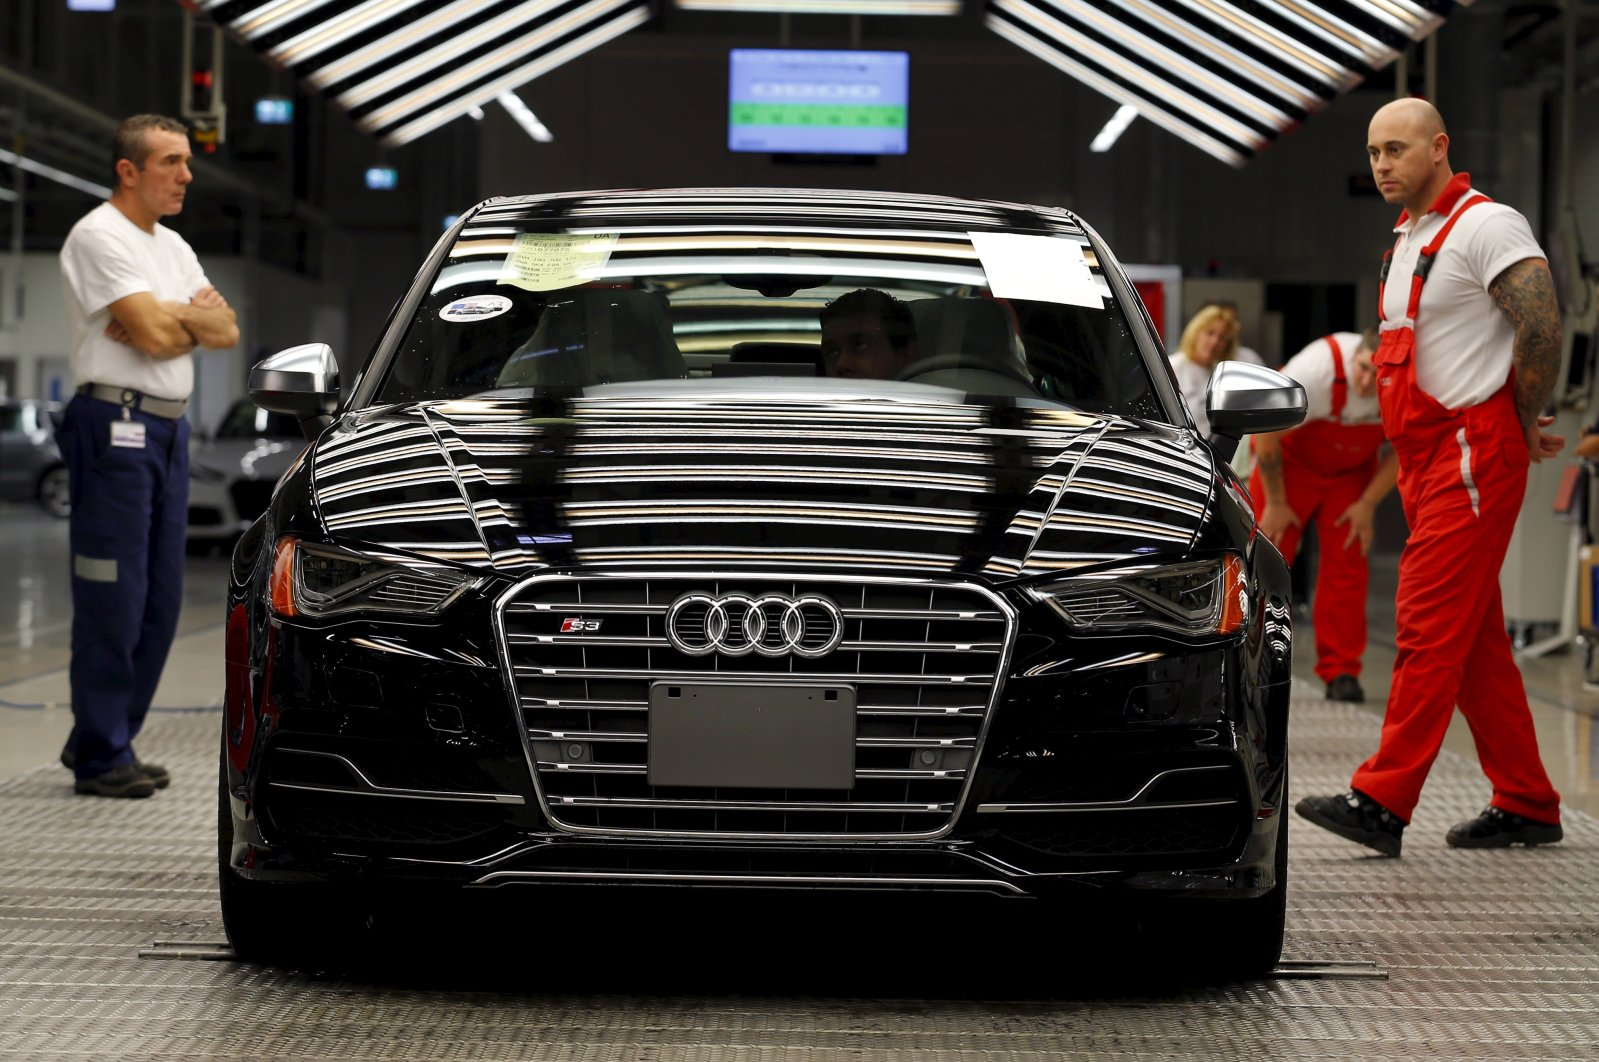 Worker stand next to a car on the assembly line as serial production of the new Audi TT roadster starts at the Audi plant in Gyor, west of Budapest, Hungary, Nov. 5, 2014. (Reuters Photo)